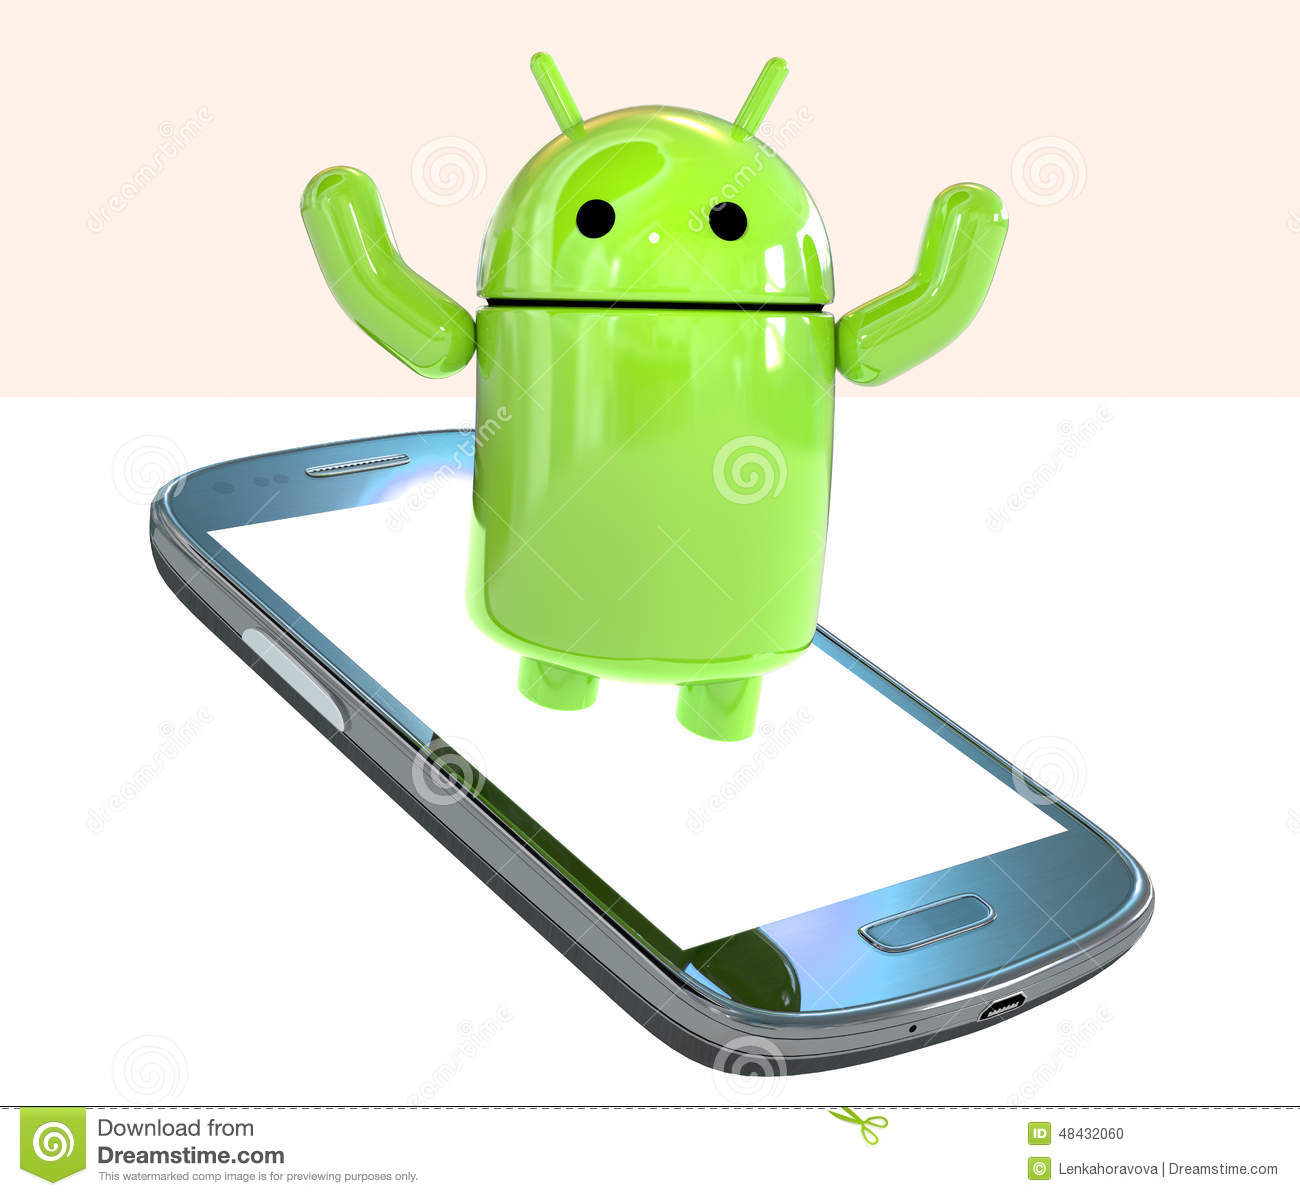 Google Android OS logo mascot robot emerging from a smartphone isolated on white background